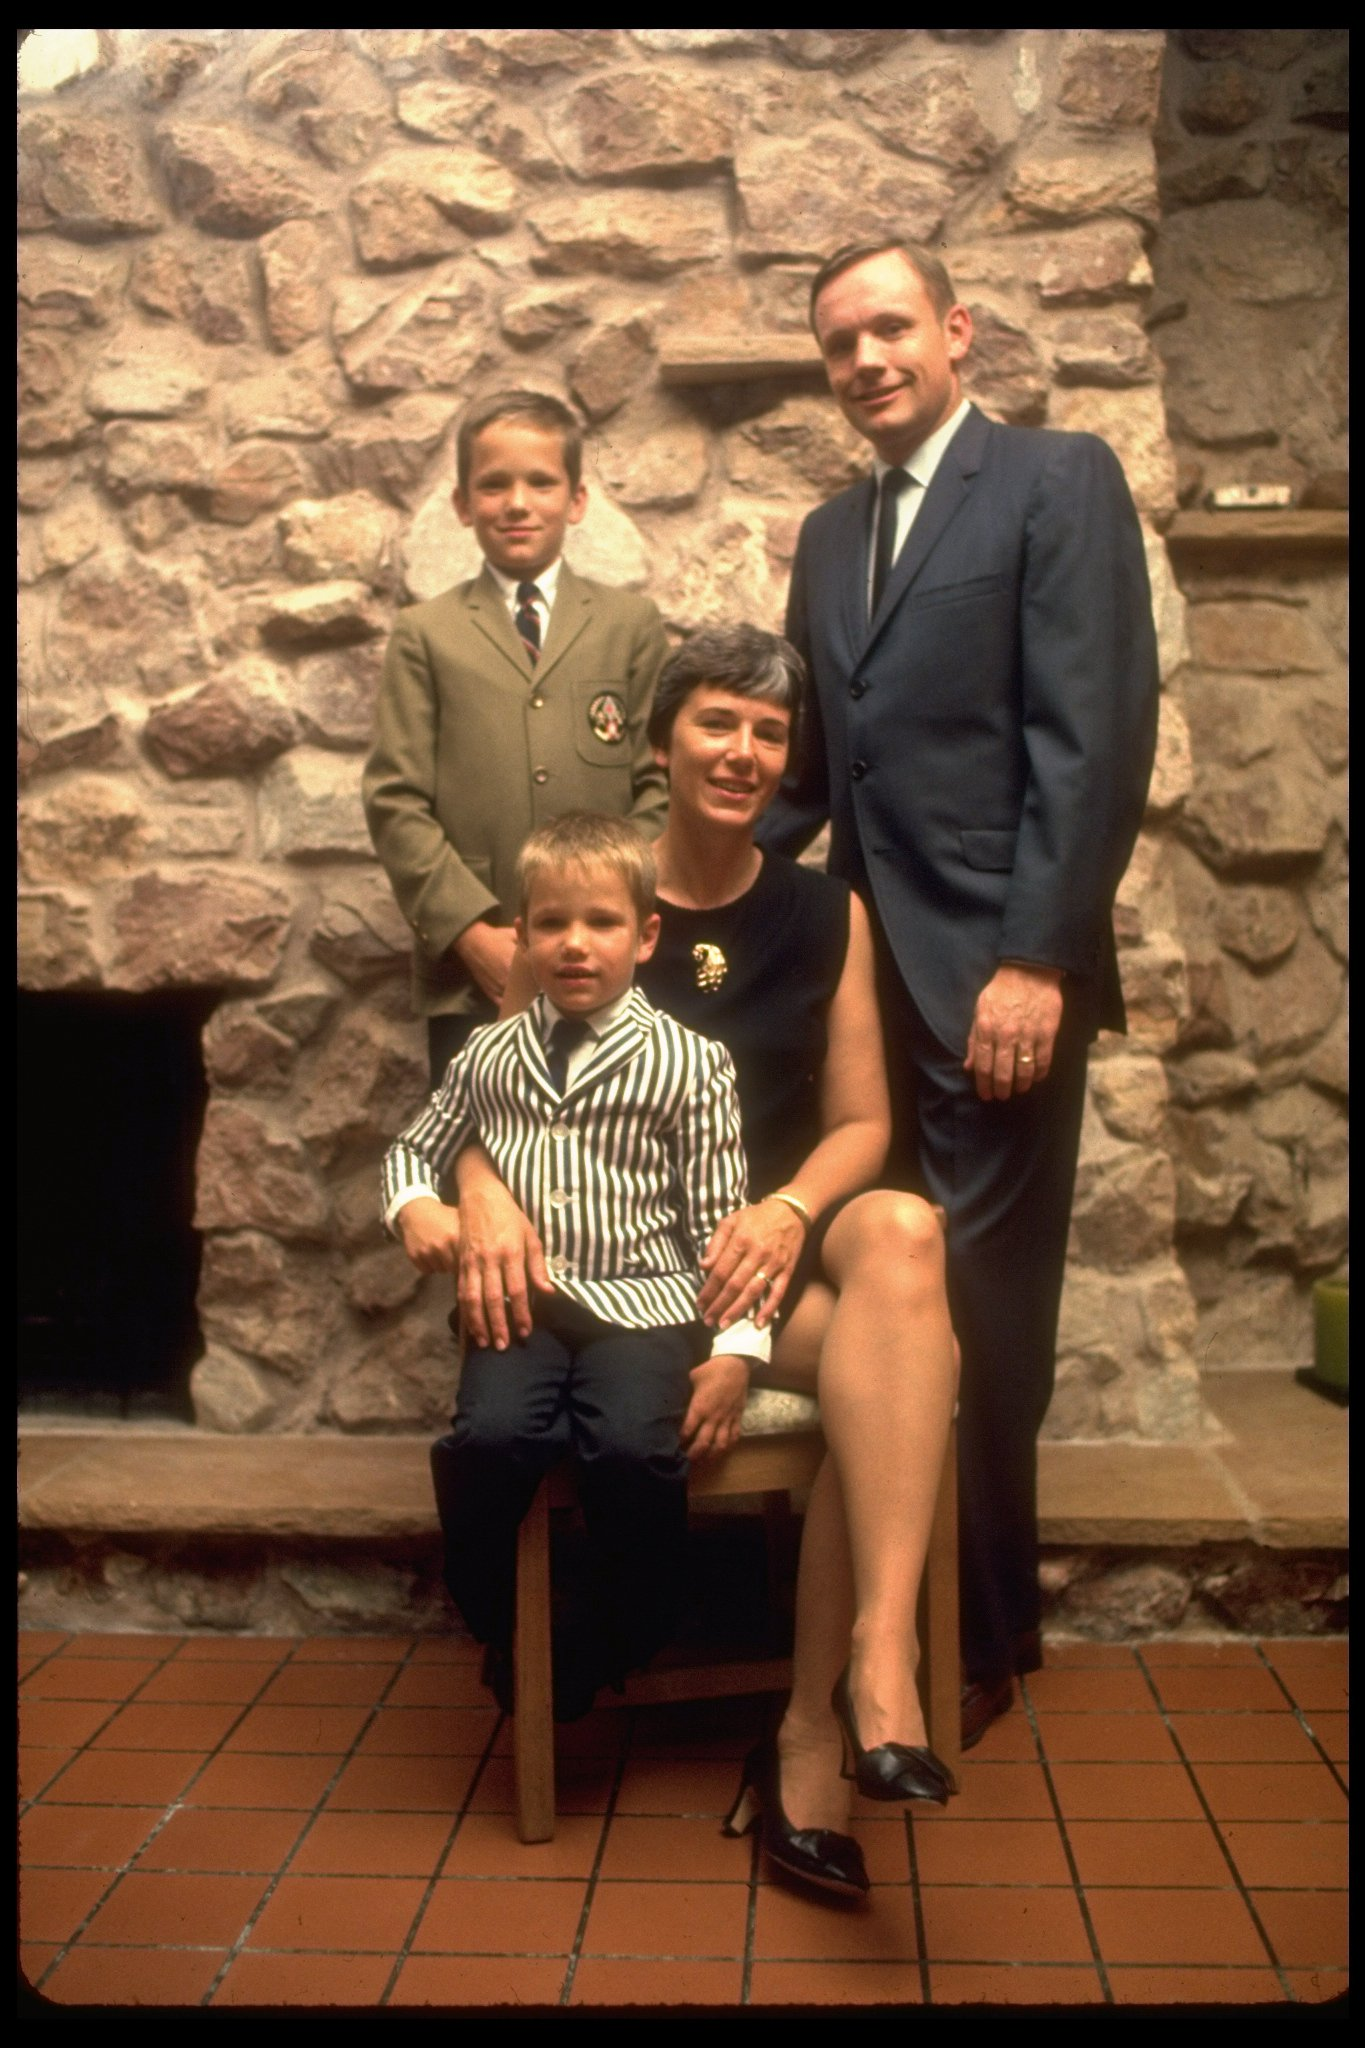 Neil Armstrong with wife Janet Shearon and sons, United States, March 1969. | Photo: Getty Images